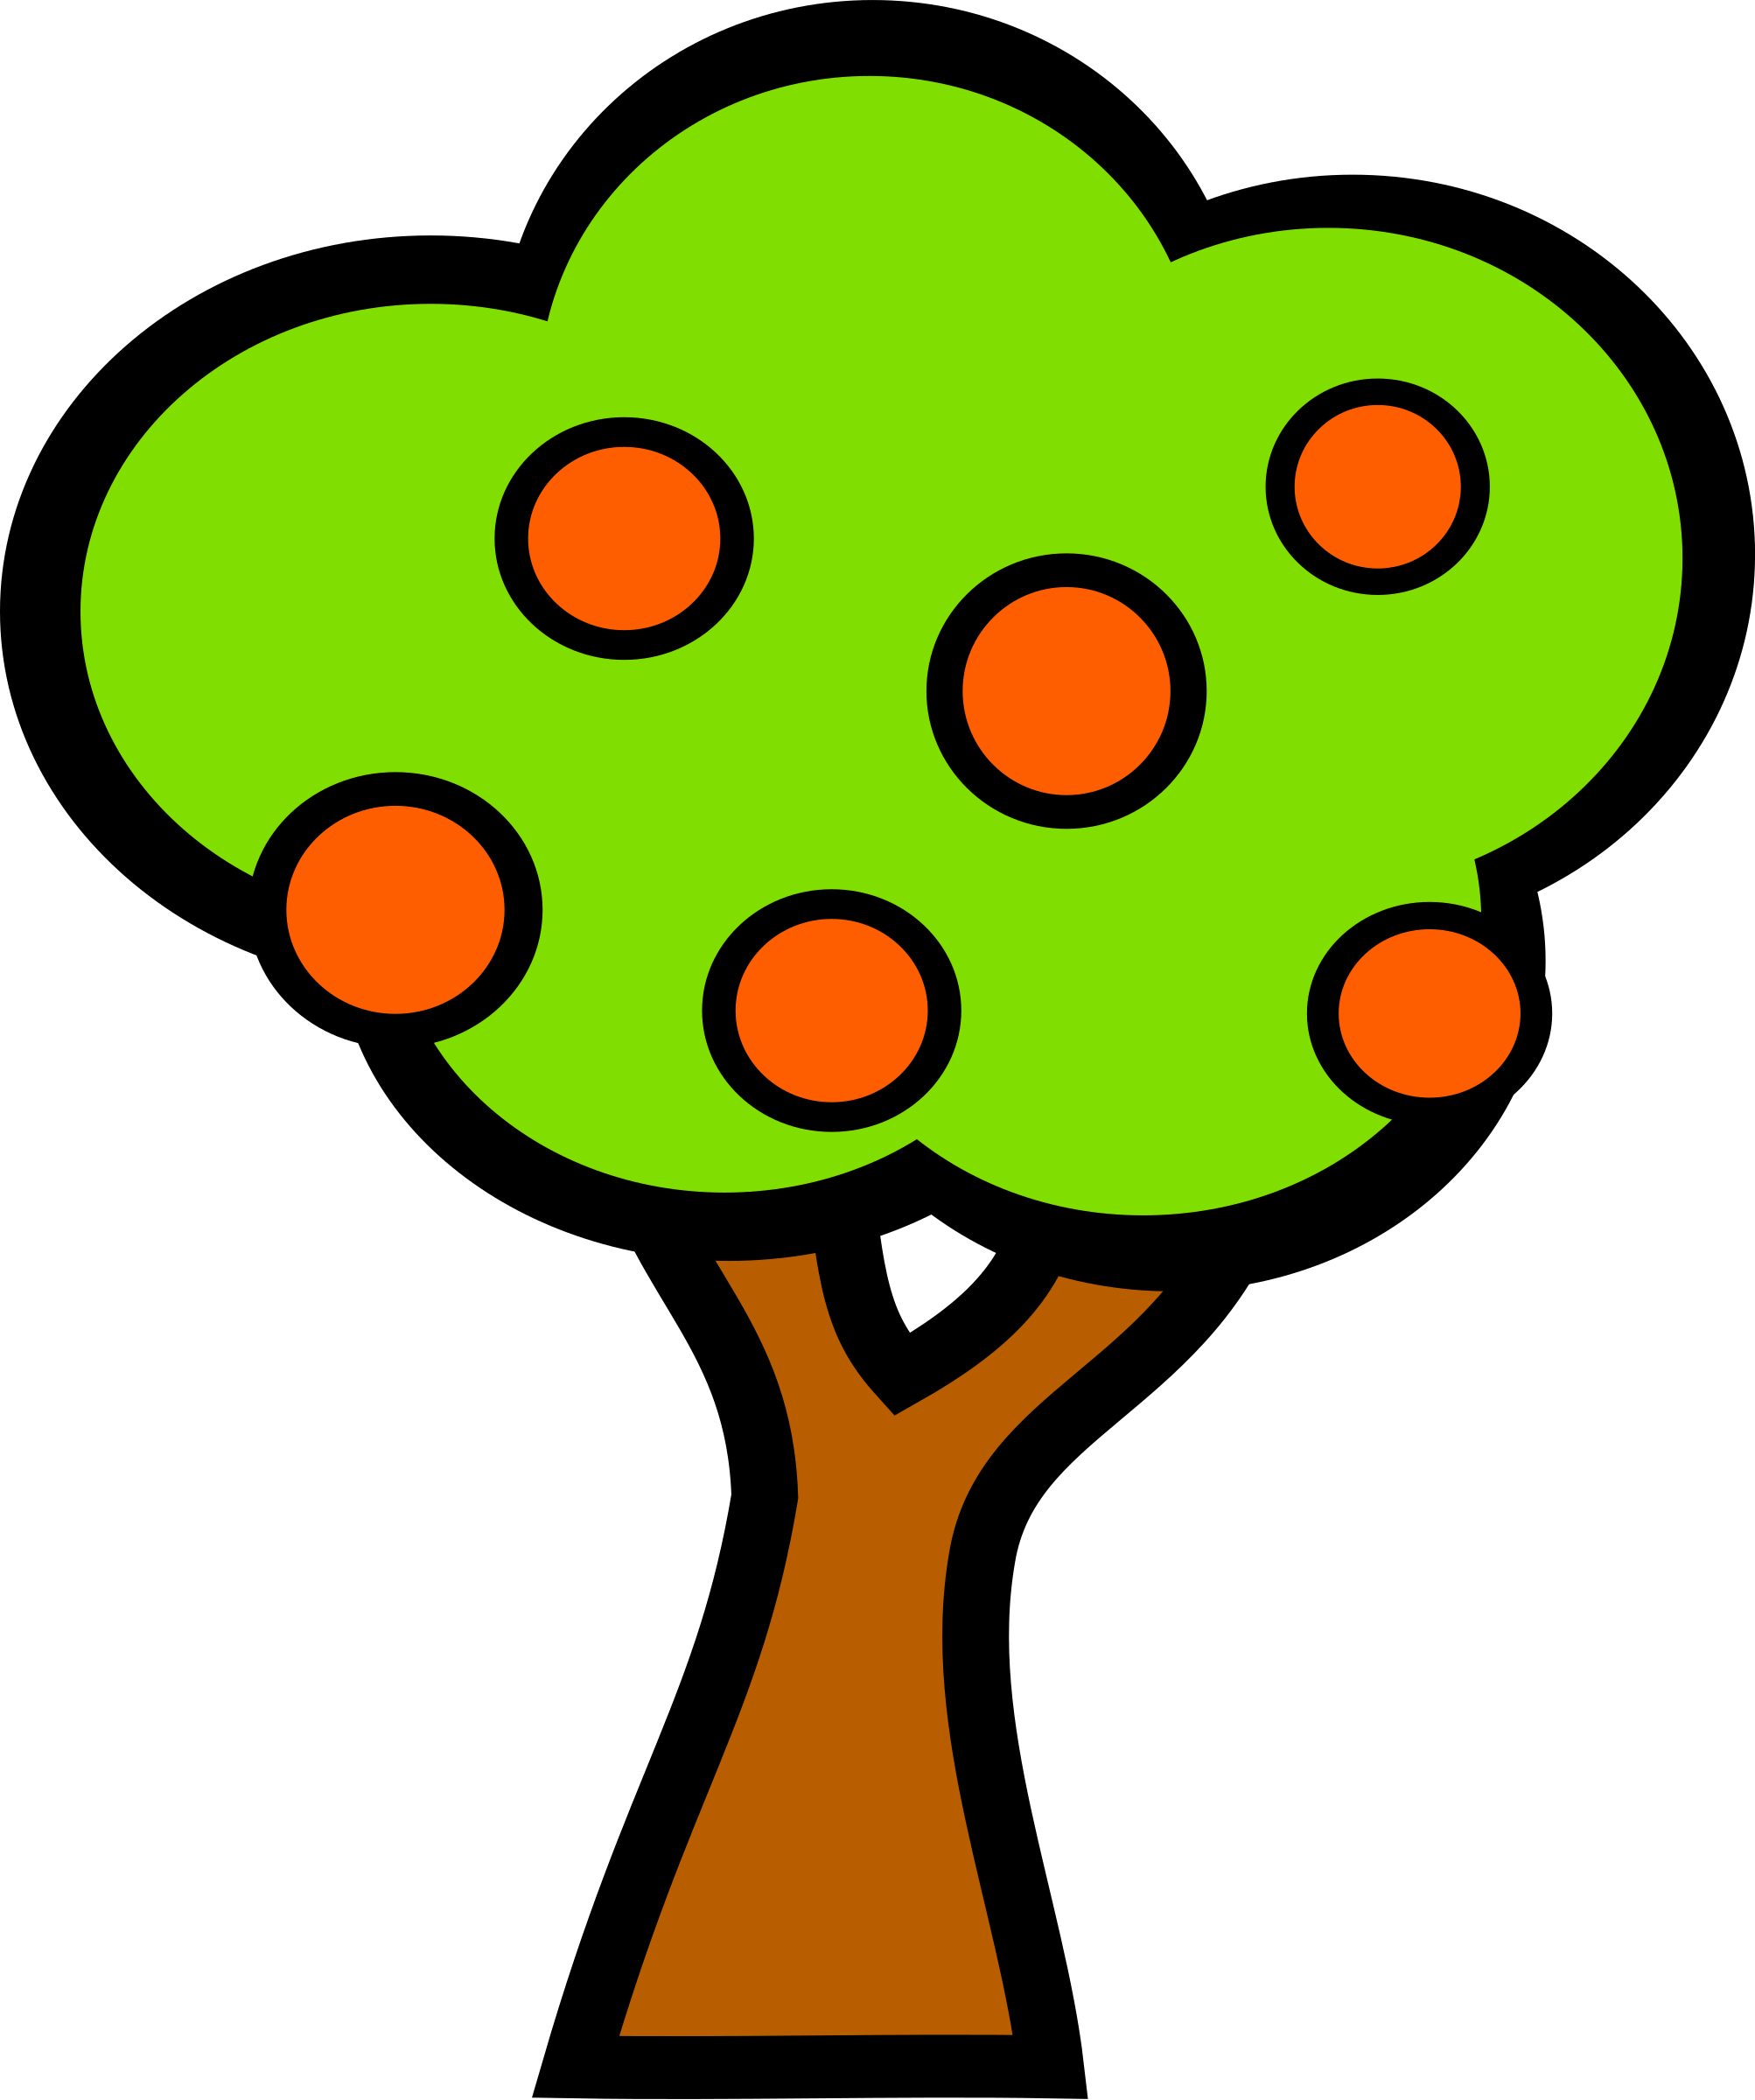 Trees clipart fruit. Tree with fruits big